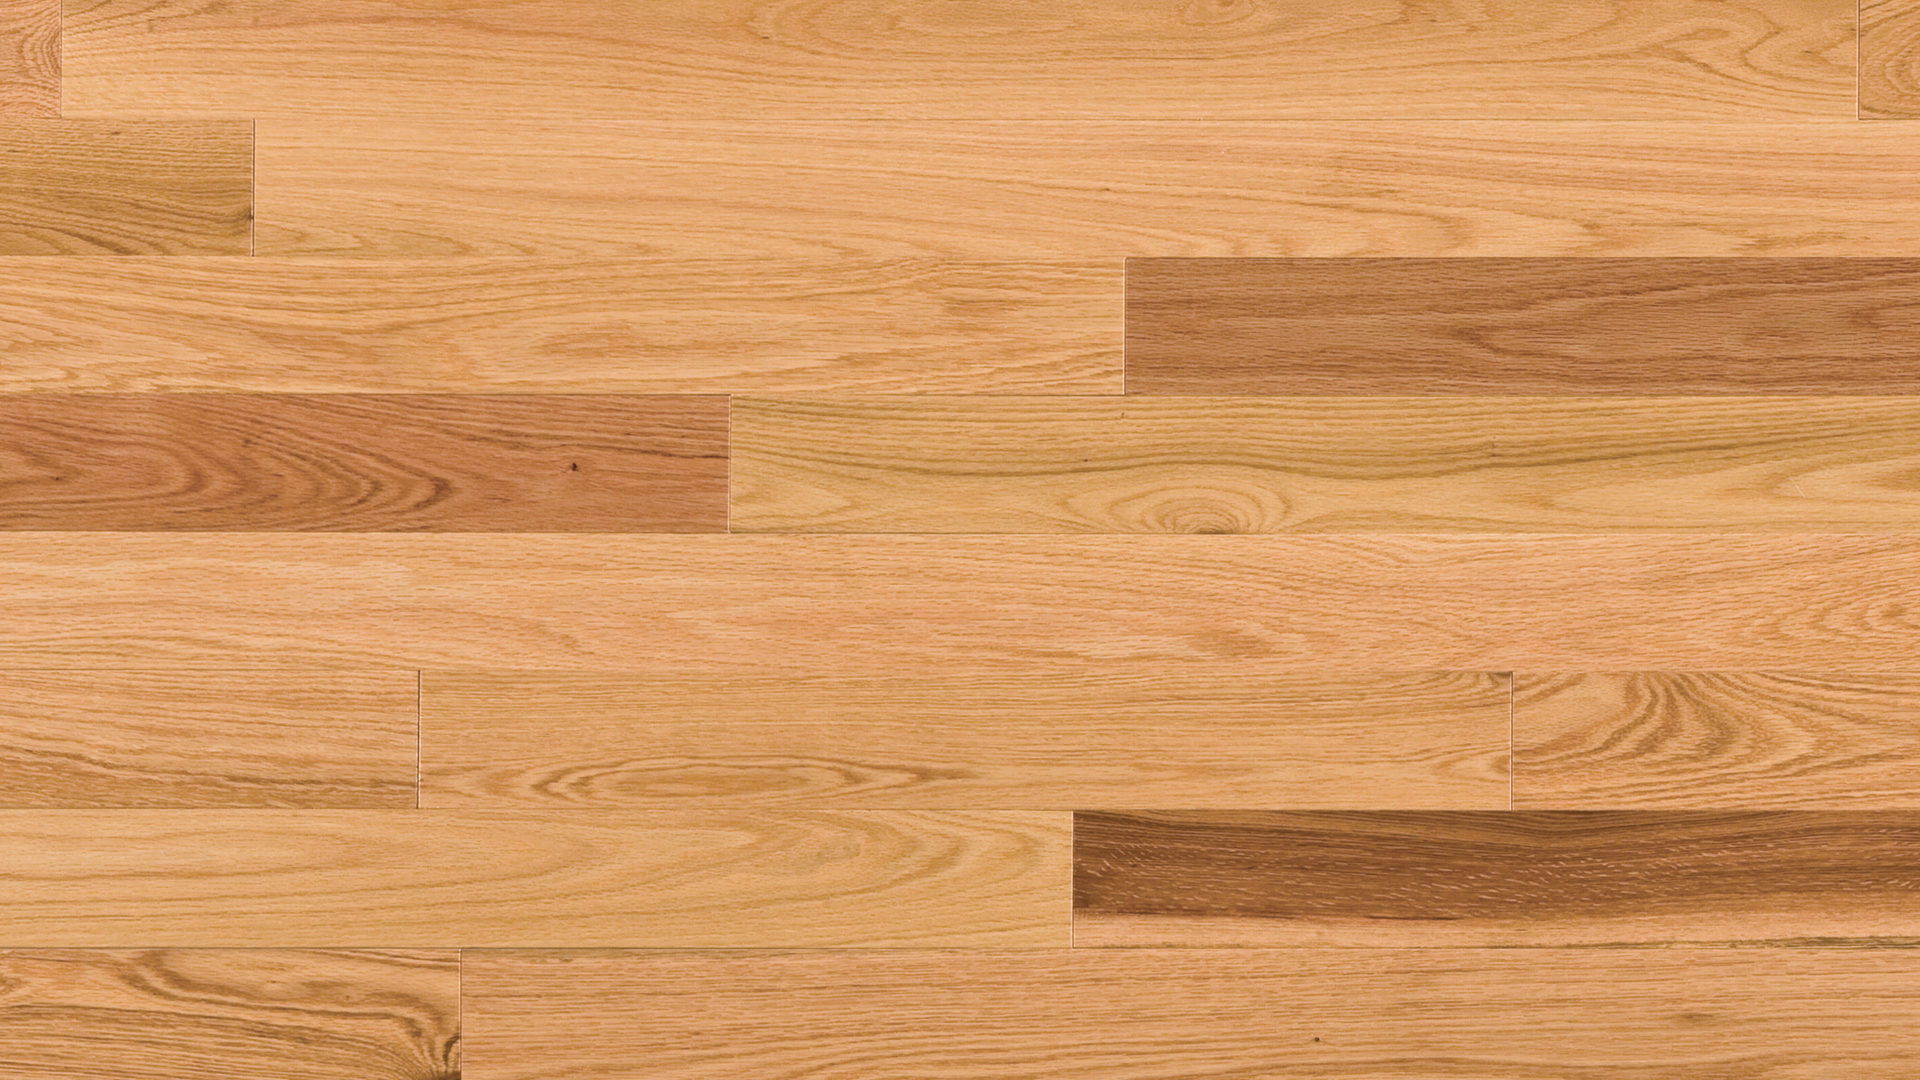 Red oak flooring 100 vintage hardwood flooring toronto for Red oak hardwood flooring